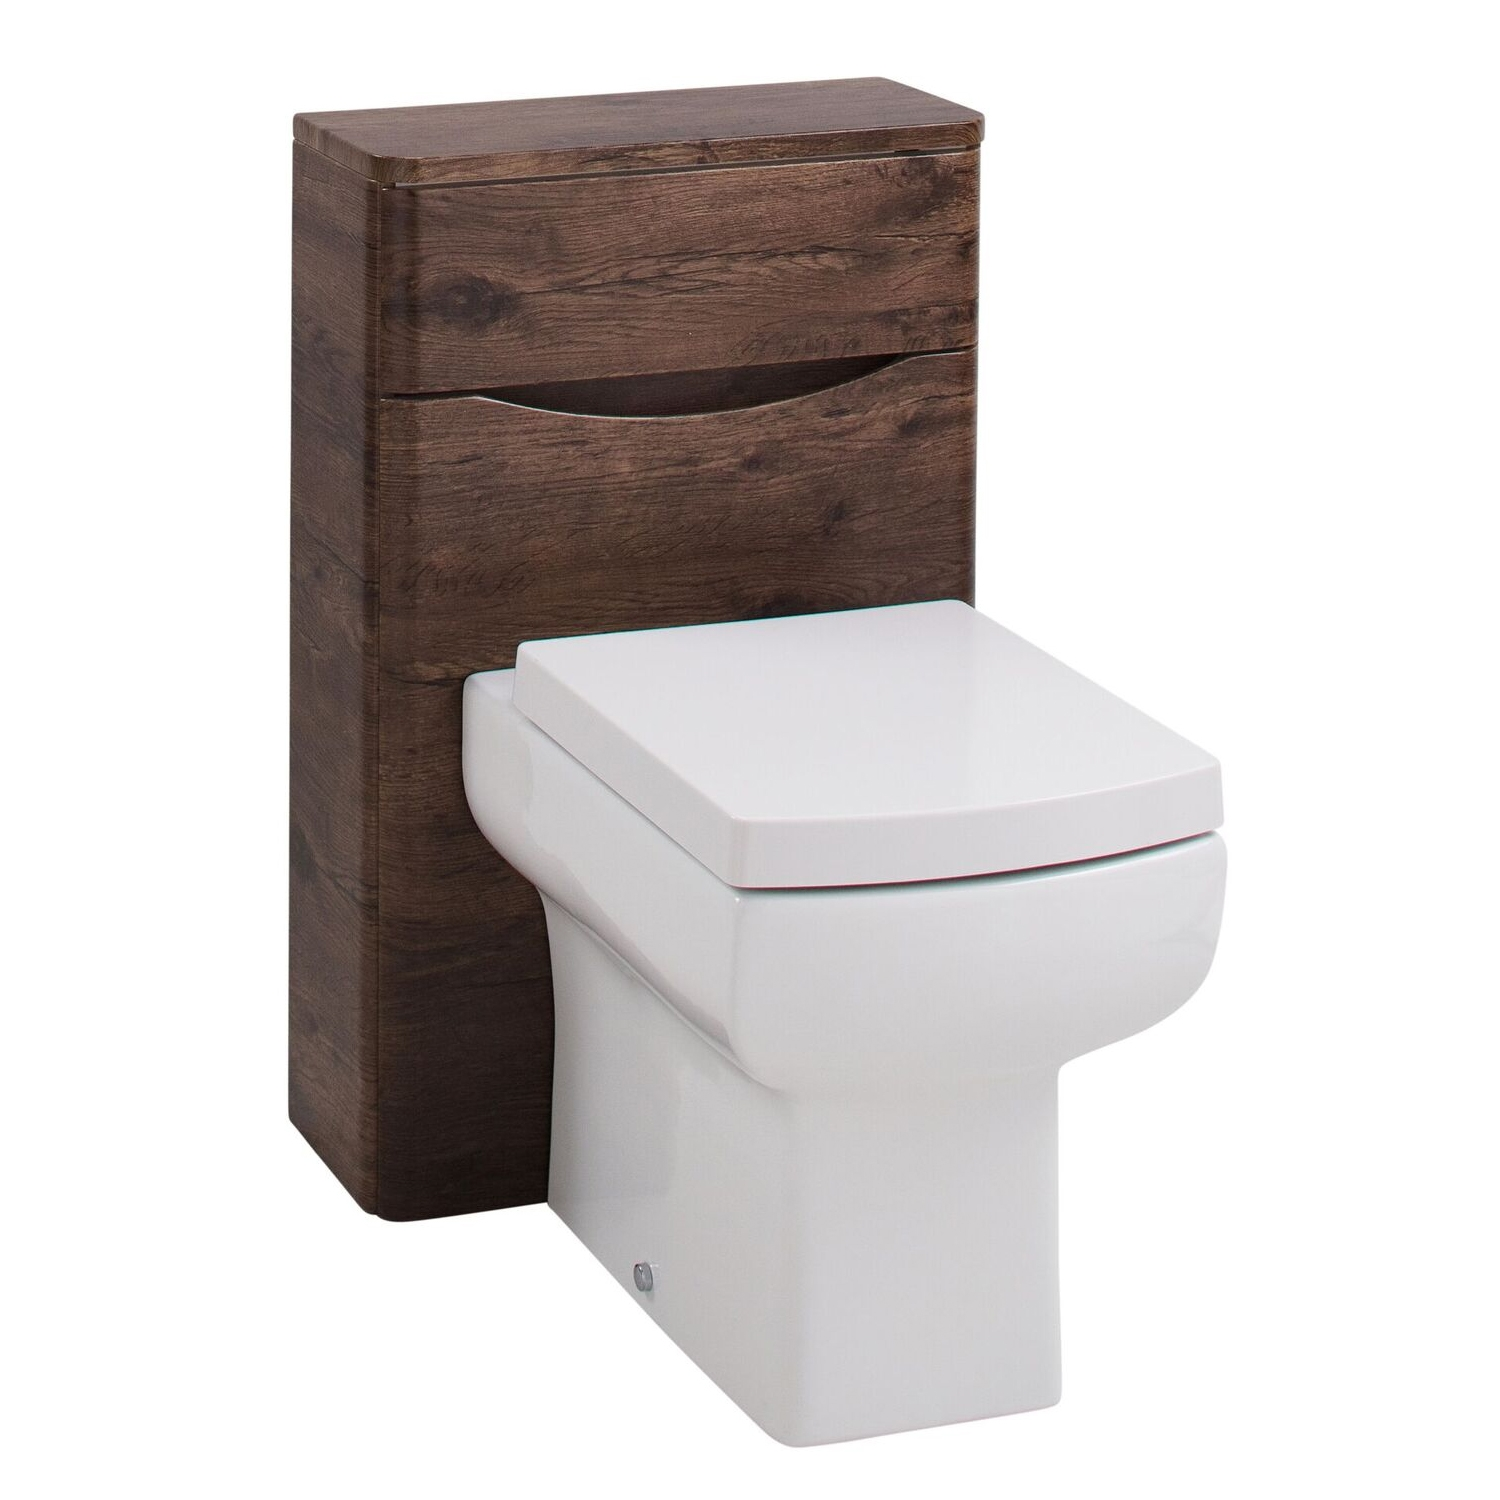 Cali Bali Back to Wall WC Unit - 500mm Wide - Chestnut